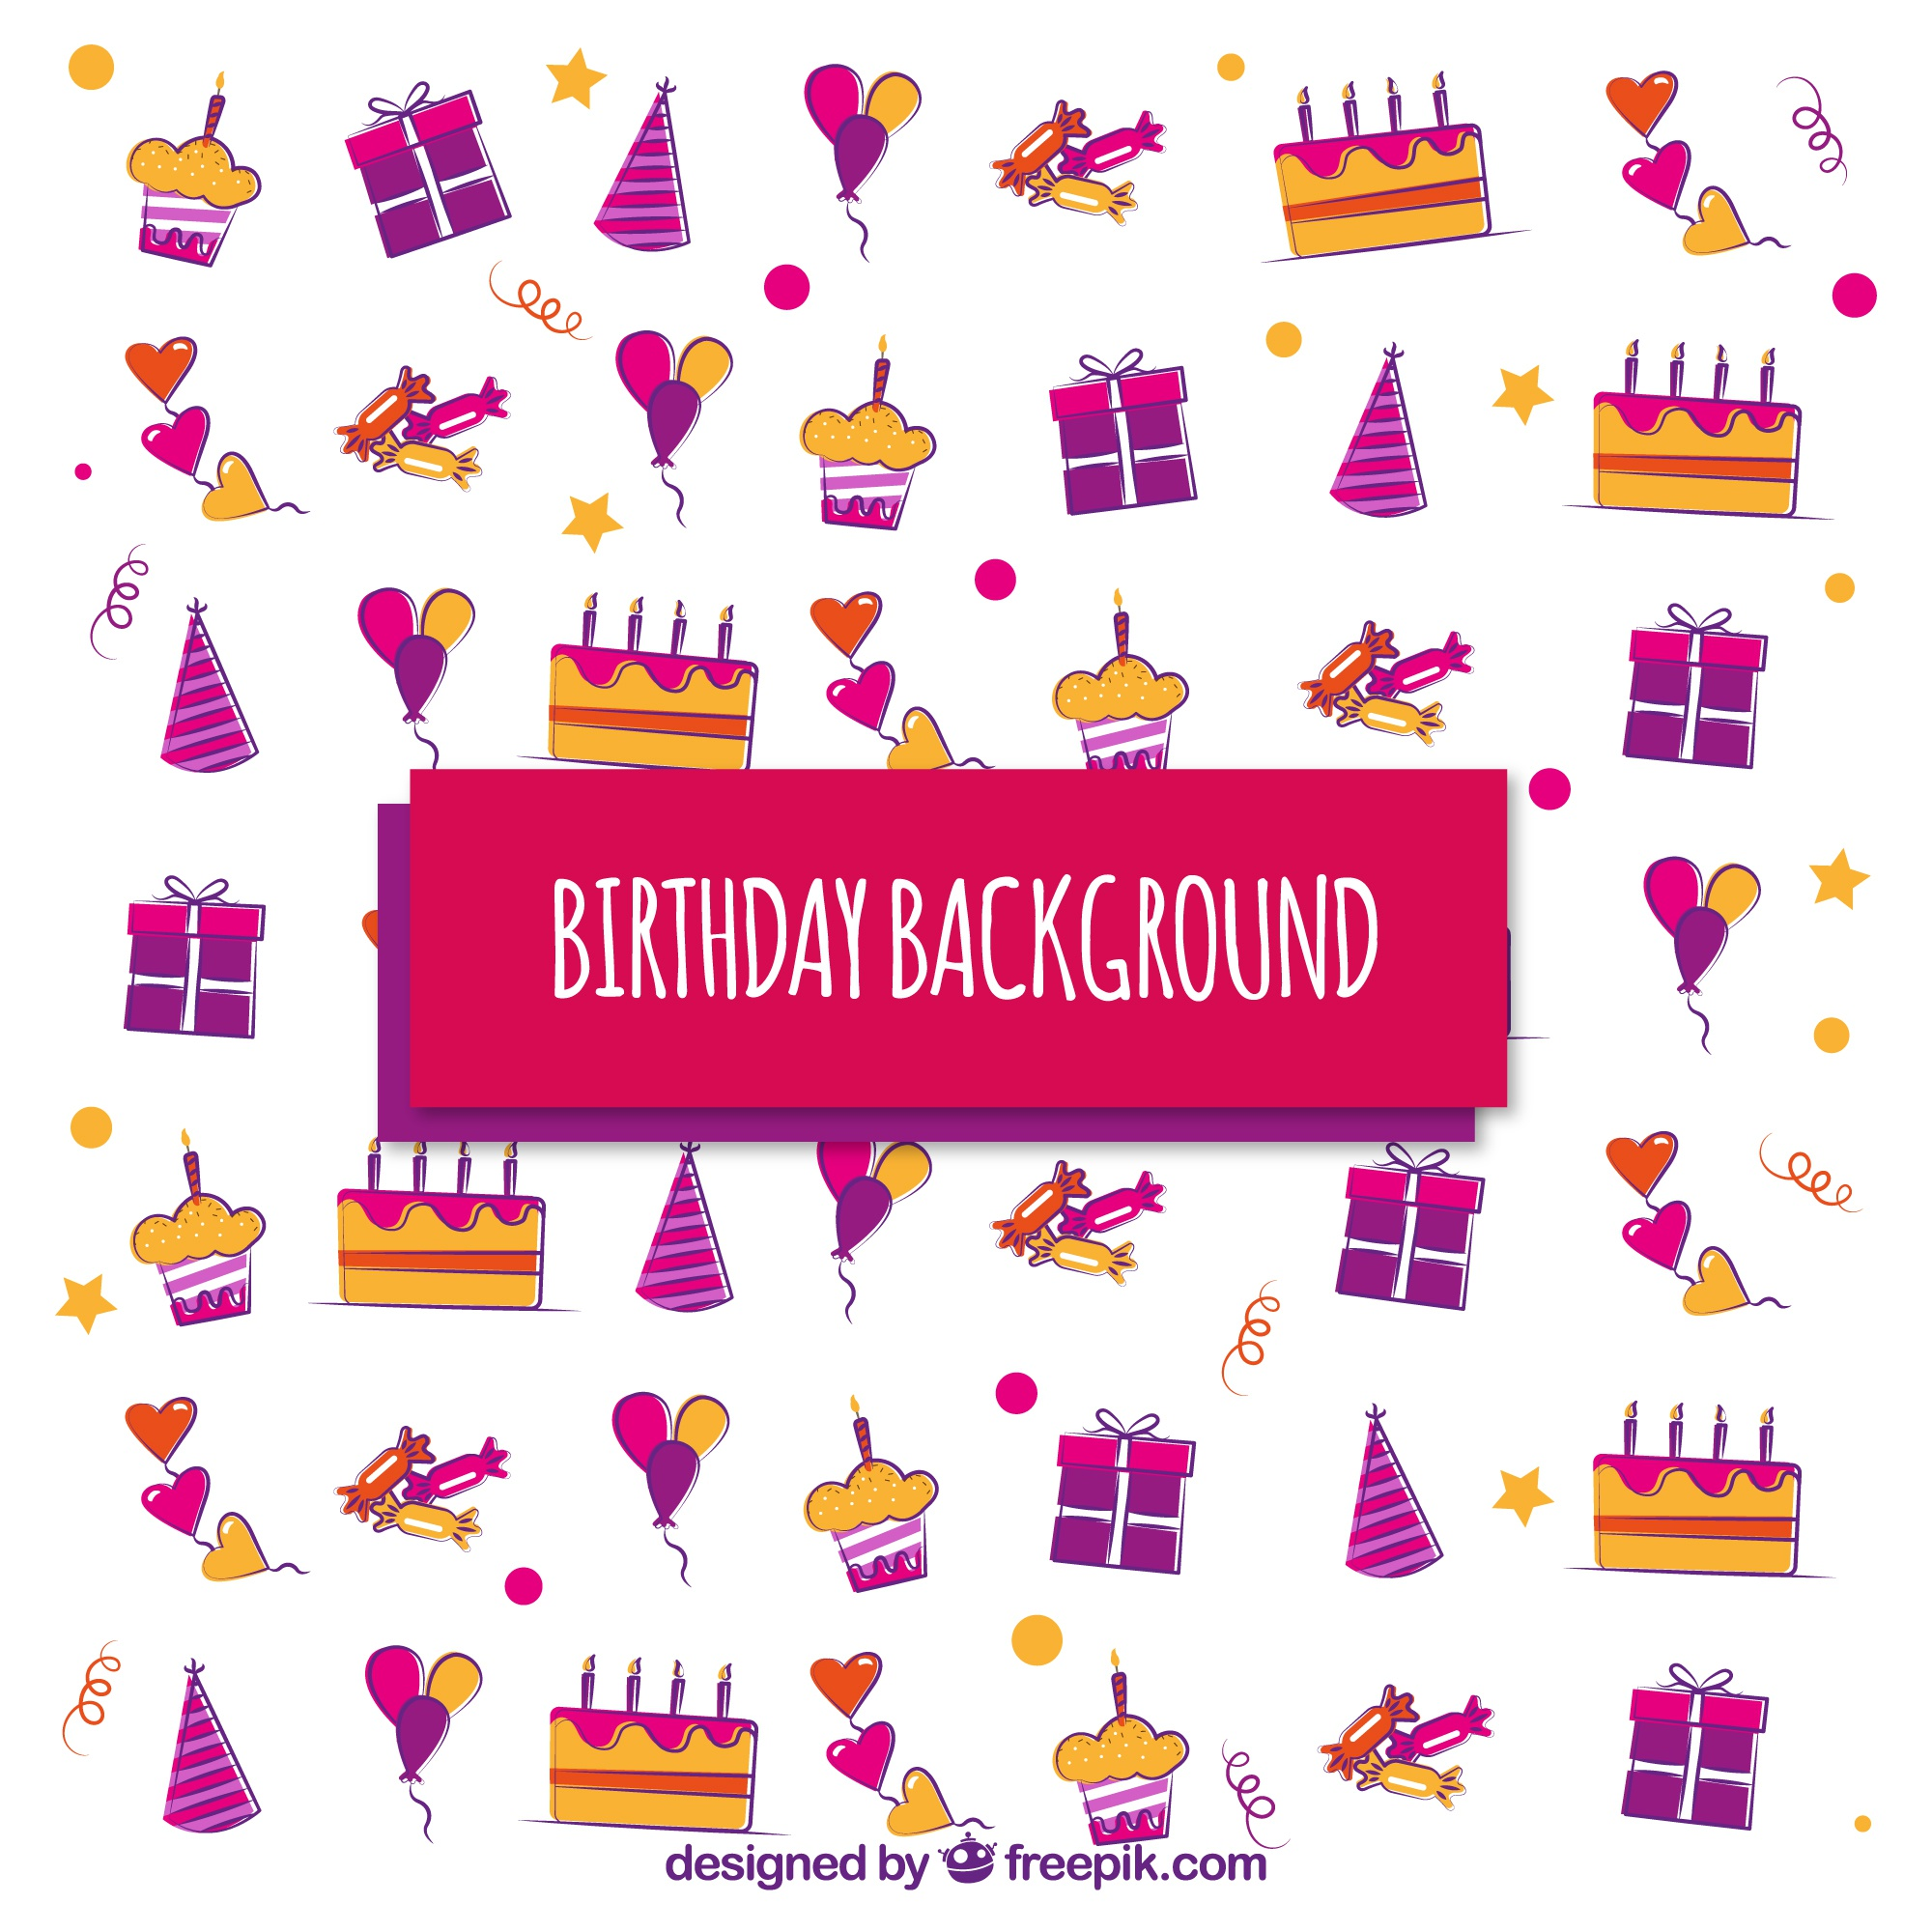 Birthday background with colored sweets